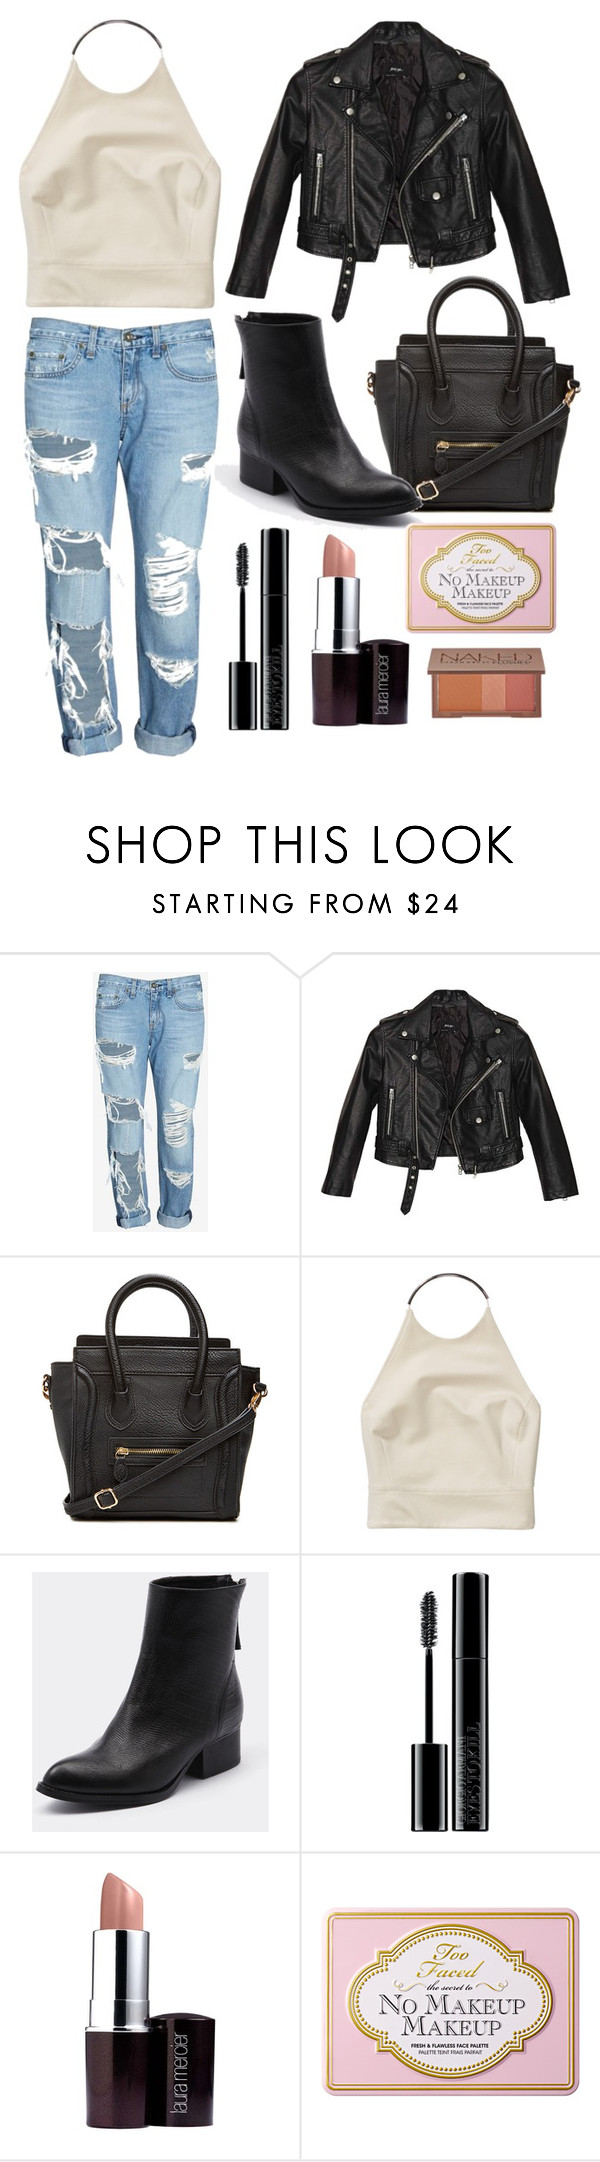 """""""Kendall Jenner"""" by kamillajenner ❤ liked on Polyvore featuring rag & bone/JEAN, Nasty Gal, DailyLook, Wilfred, Tony Bianco, Giorgio Armani, Laura Mercier, Urban Decay and kendalljenner"""